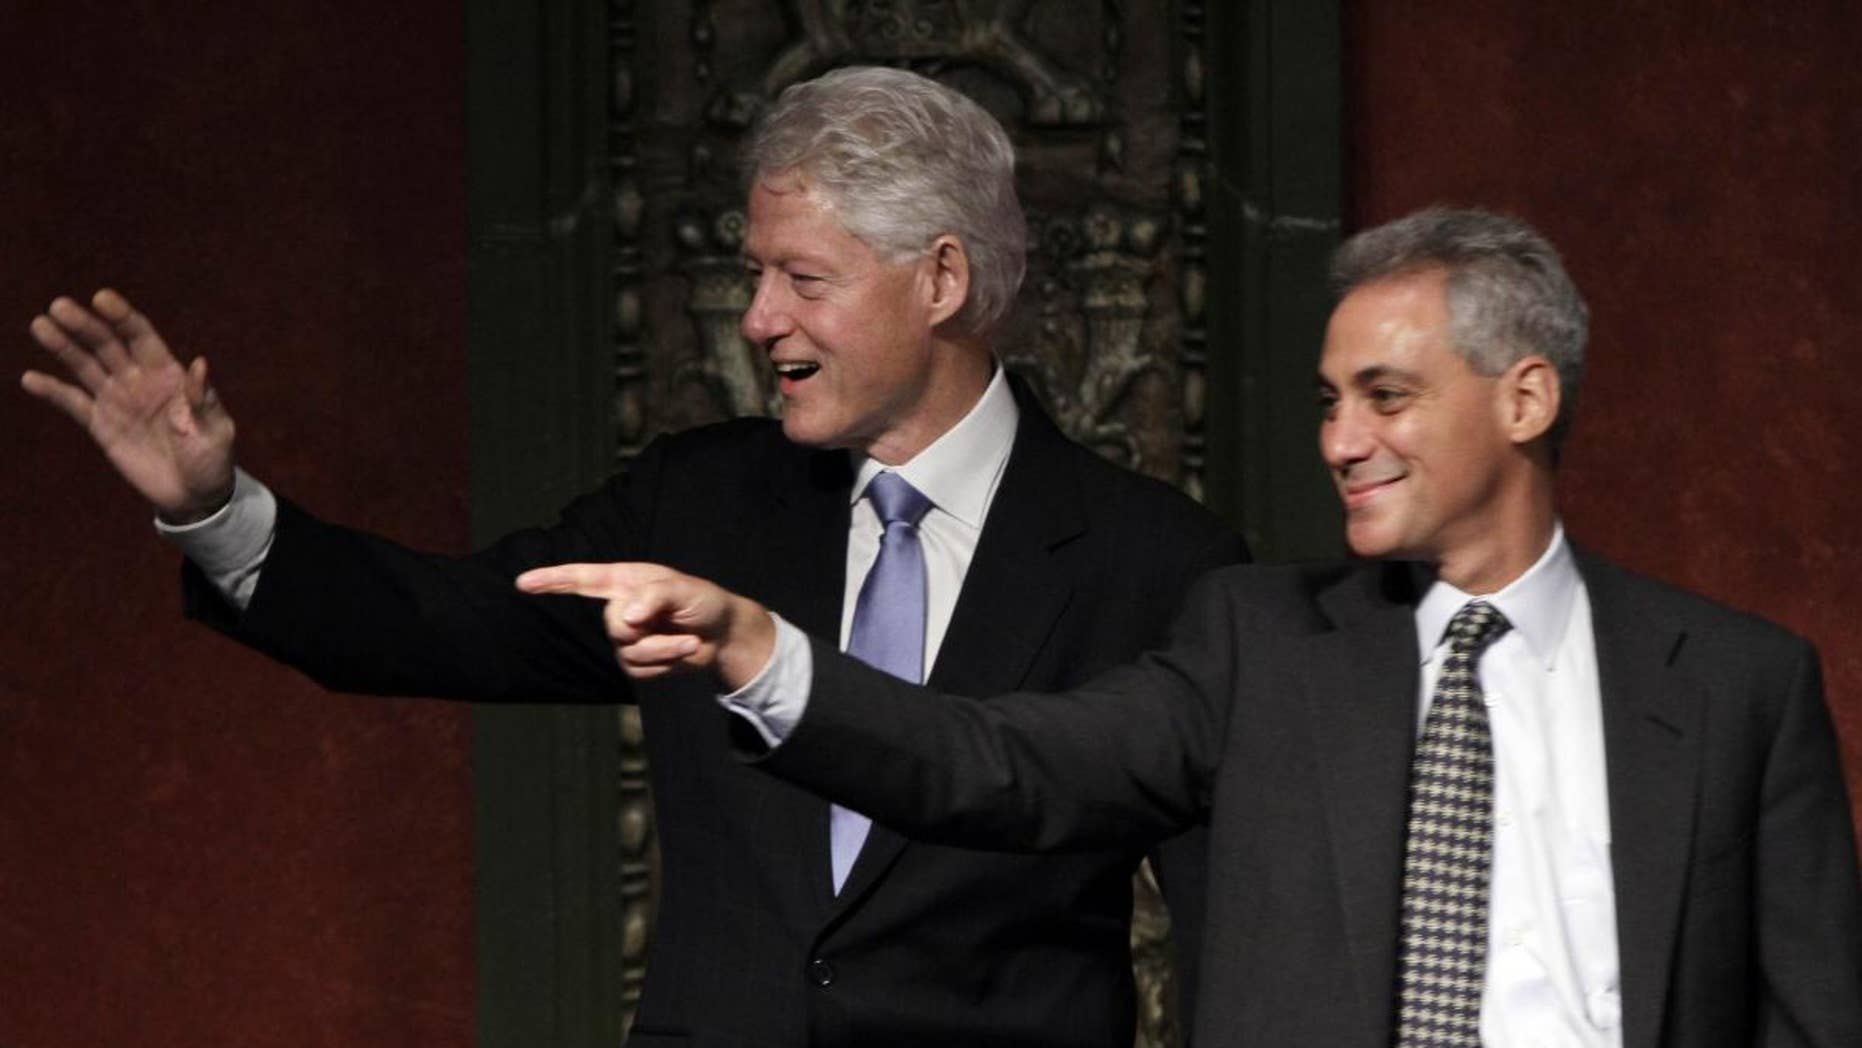 Former President Bill Clinton, left, appears at a rally for Chicago mayoral candidate and former White House chief of staff Rahm Emanuel, Tuesday, Jan. 18, 2011, in Chicago. Emanuel is vying to succeed the retiring Mayor Richard Daley. The election is Feb. 22. (AP Photo/M. Spencer Green)